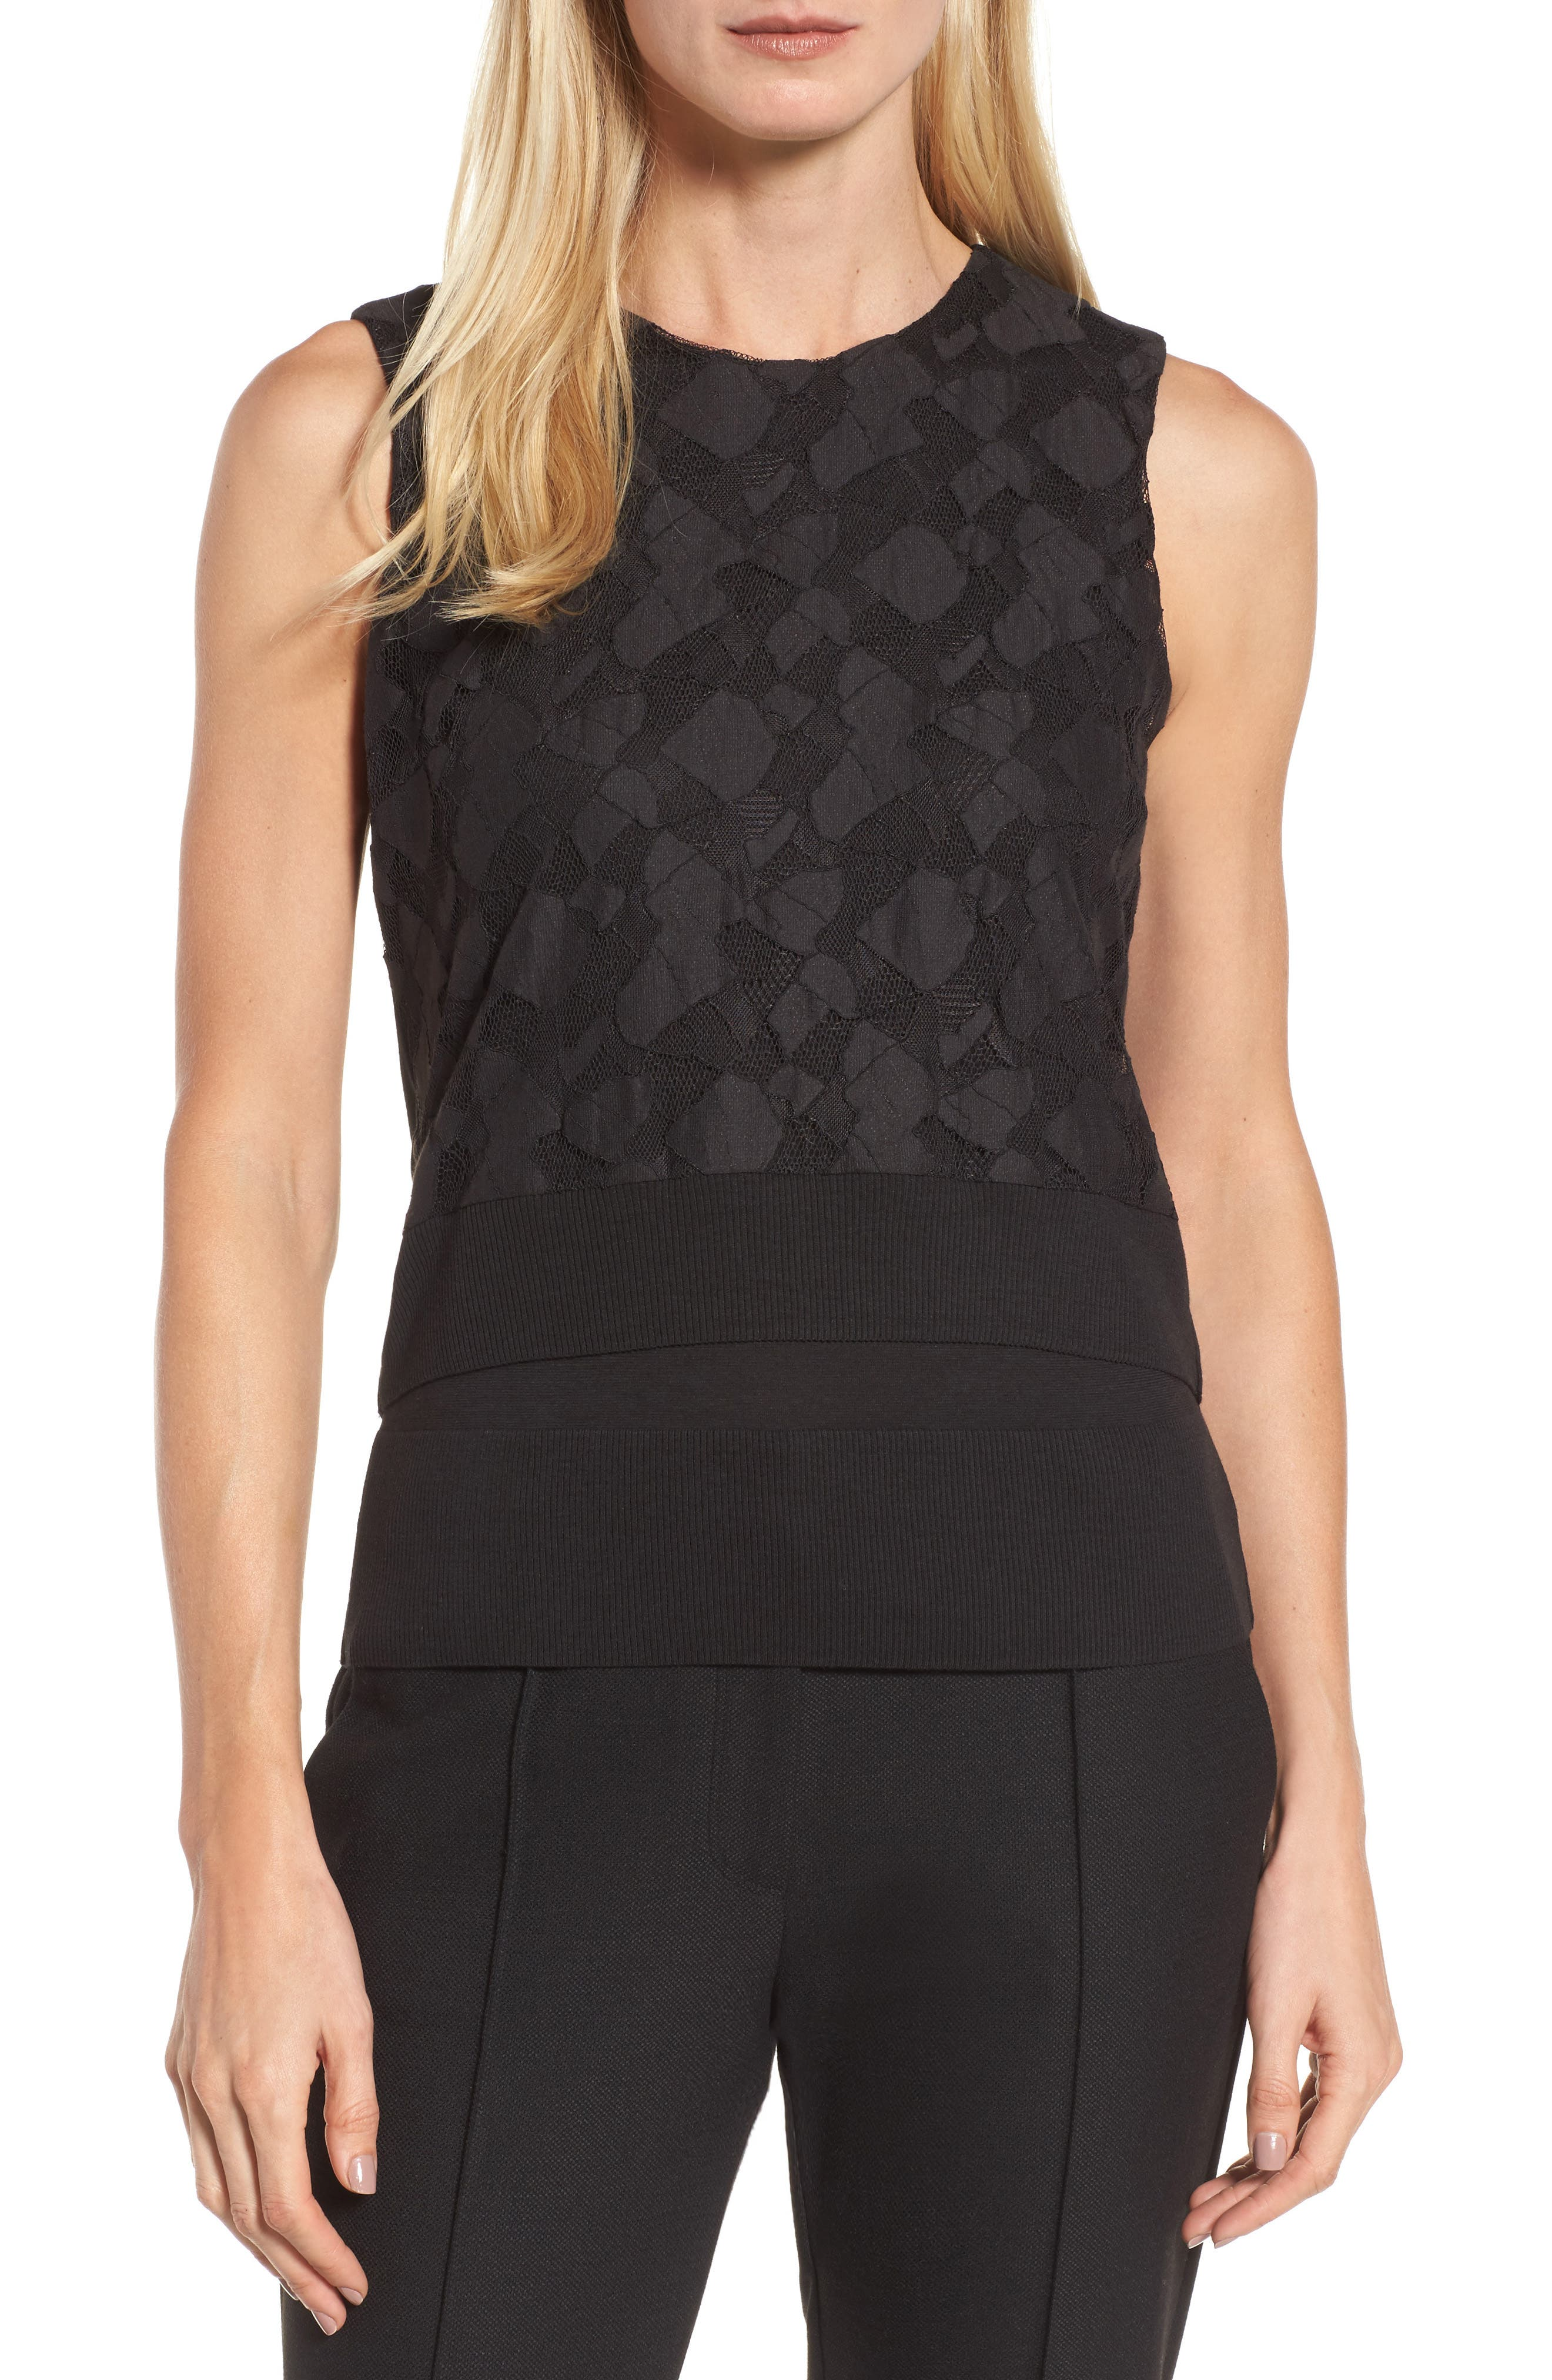 Elrica Lace Front Knit Top,                         Main,                         color, Black